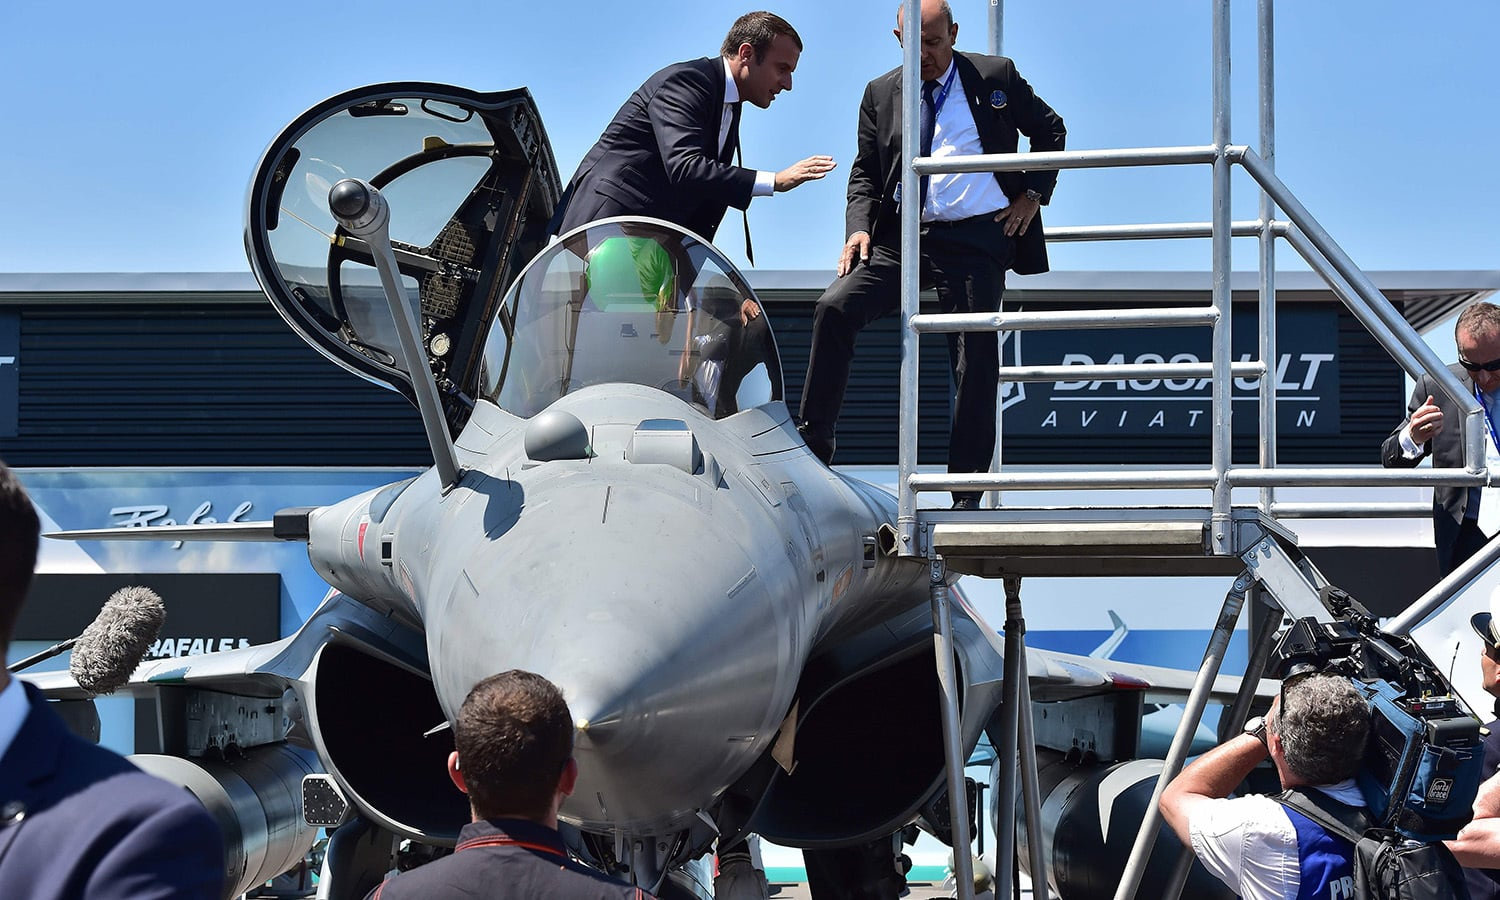 France's President Emmanuel Macron (top, L) exits a Dassault Aviation Rafale fighter jet as Dassault Aviation CEO Eric Trappier (top, R) looks on. ─ AFP